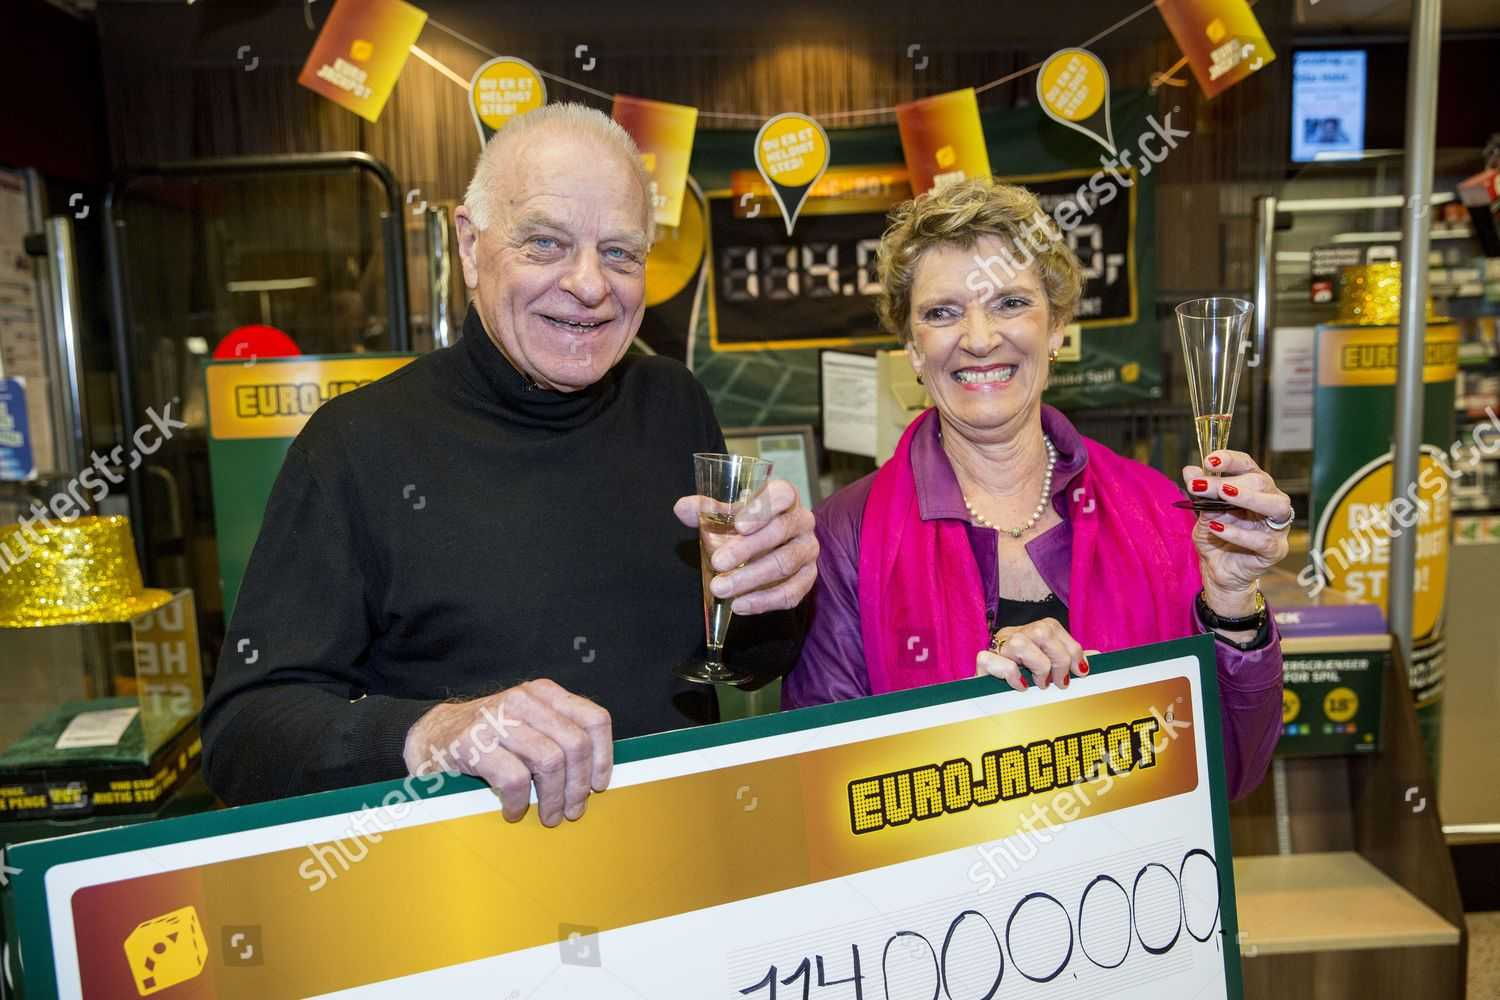 Eurojackpot lottery - how to play from Russia? | lottery world